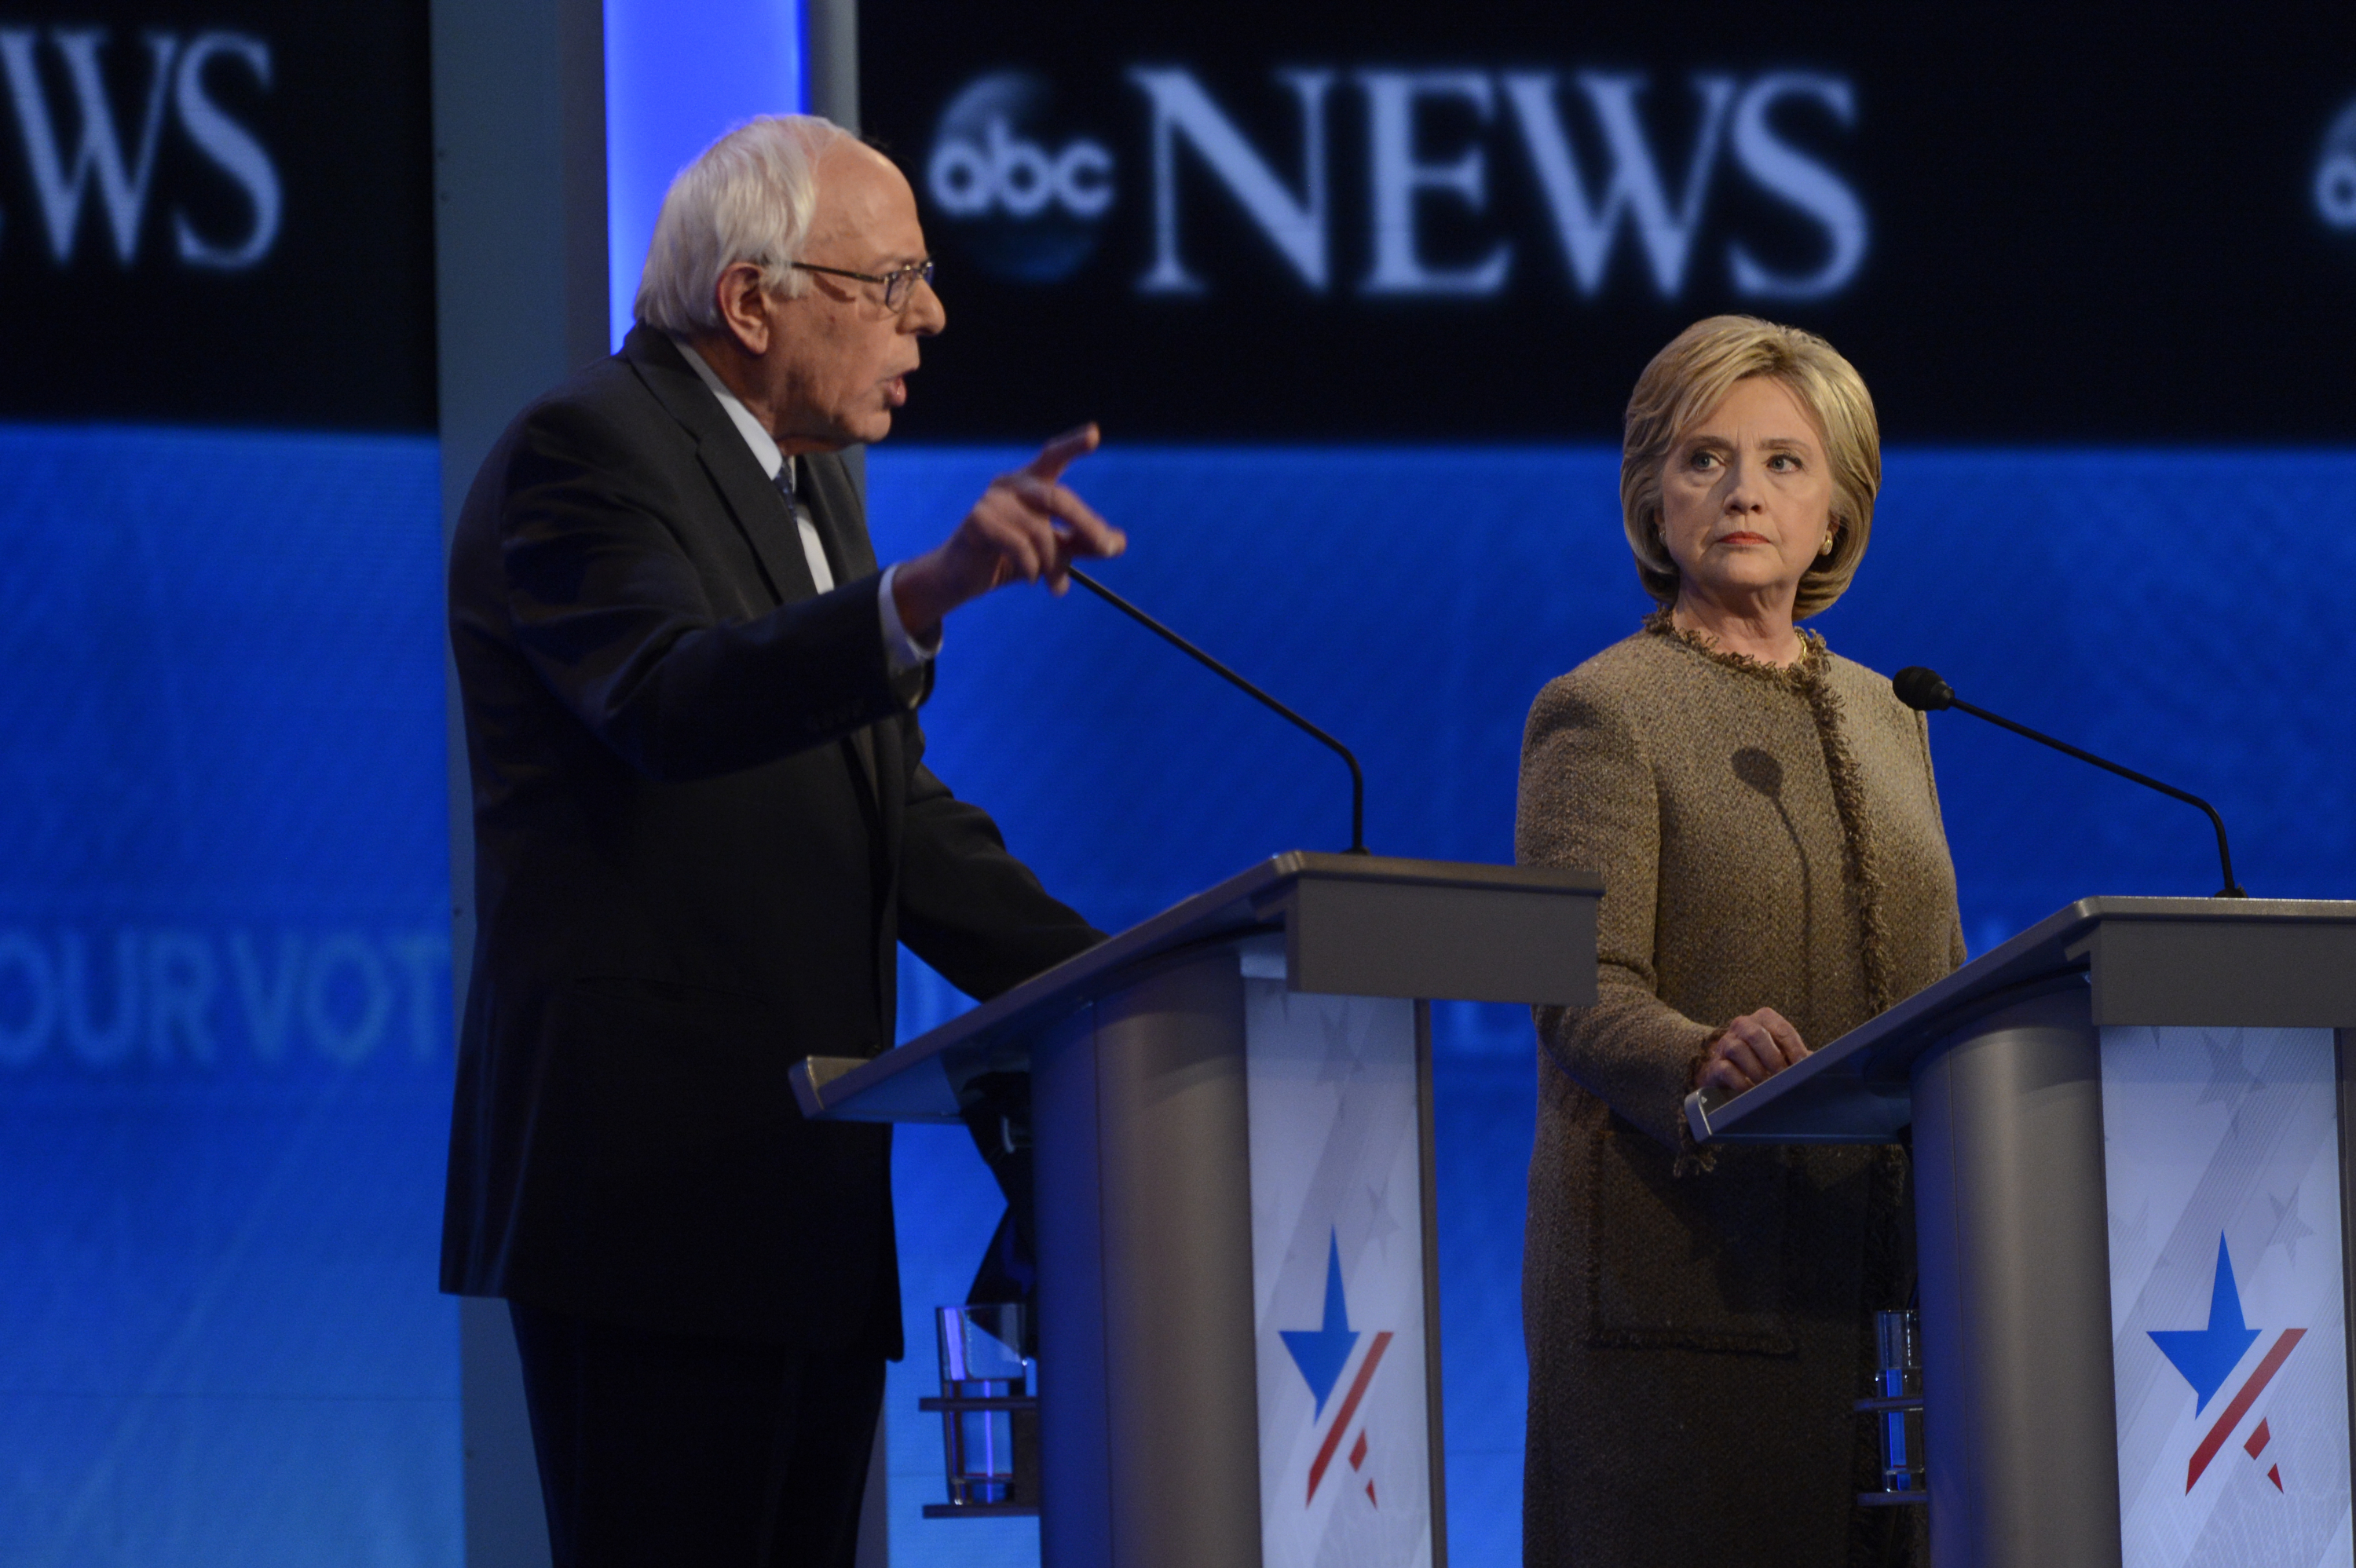 Hillary Clinton and Bernie Sanders at the  Democratic Presidential debate at St. Anselm College in Manchester, NH on  Dec. 19, 2015.